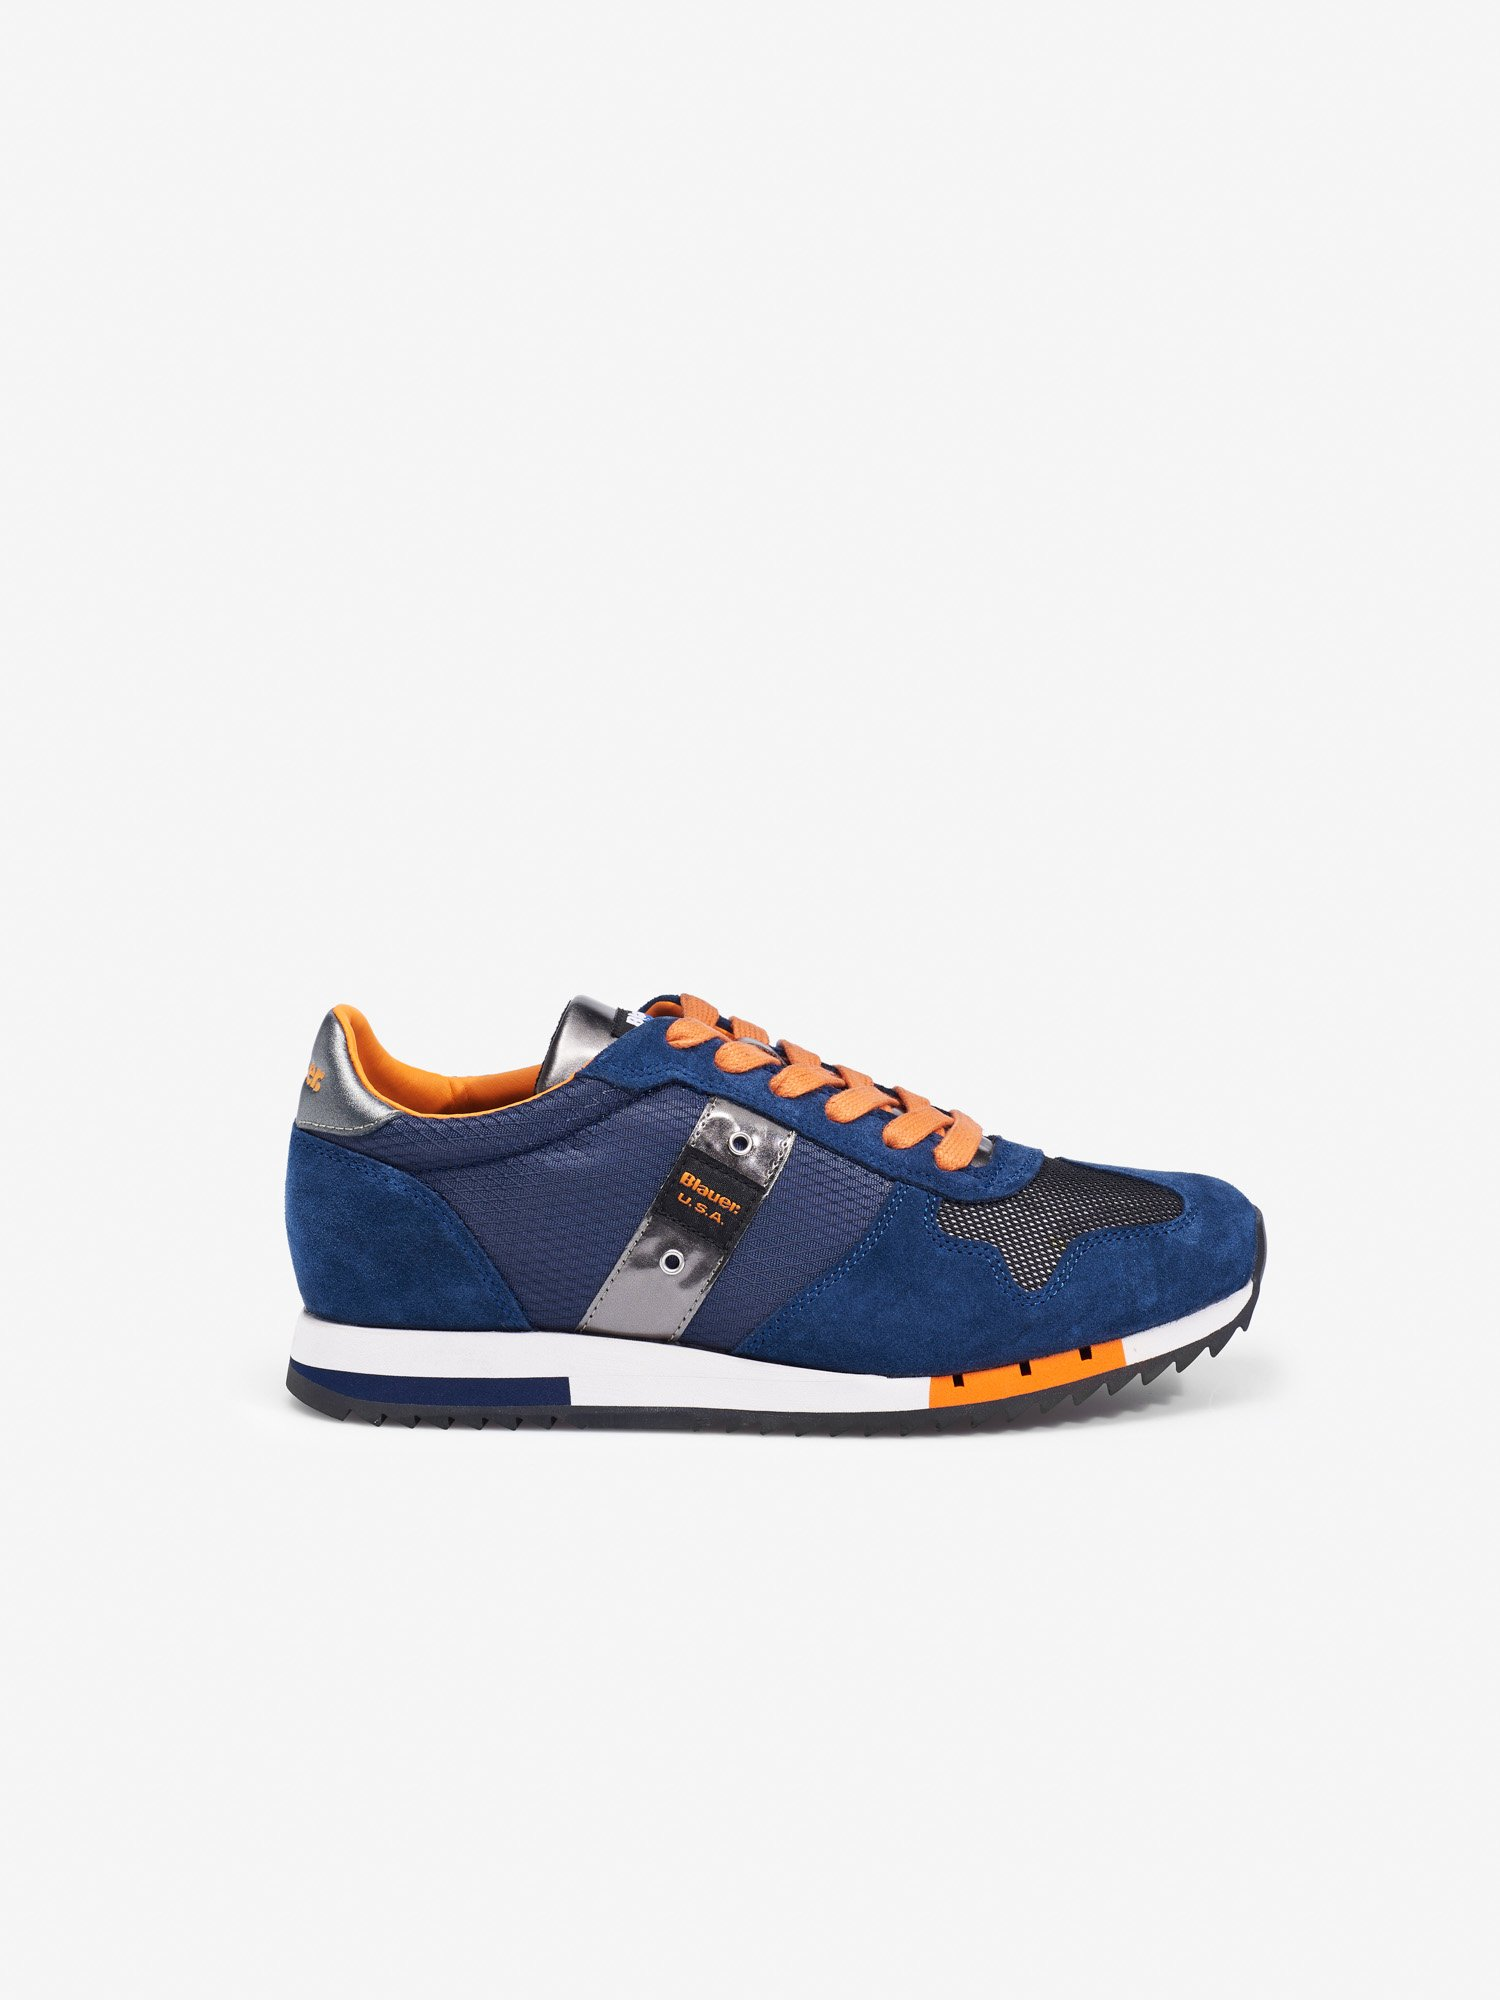 Blauer - QUINCY CAMOUFLAGE TRAINERS - Baltic Sea - Blauer